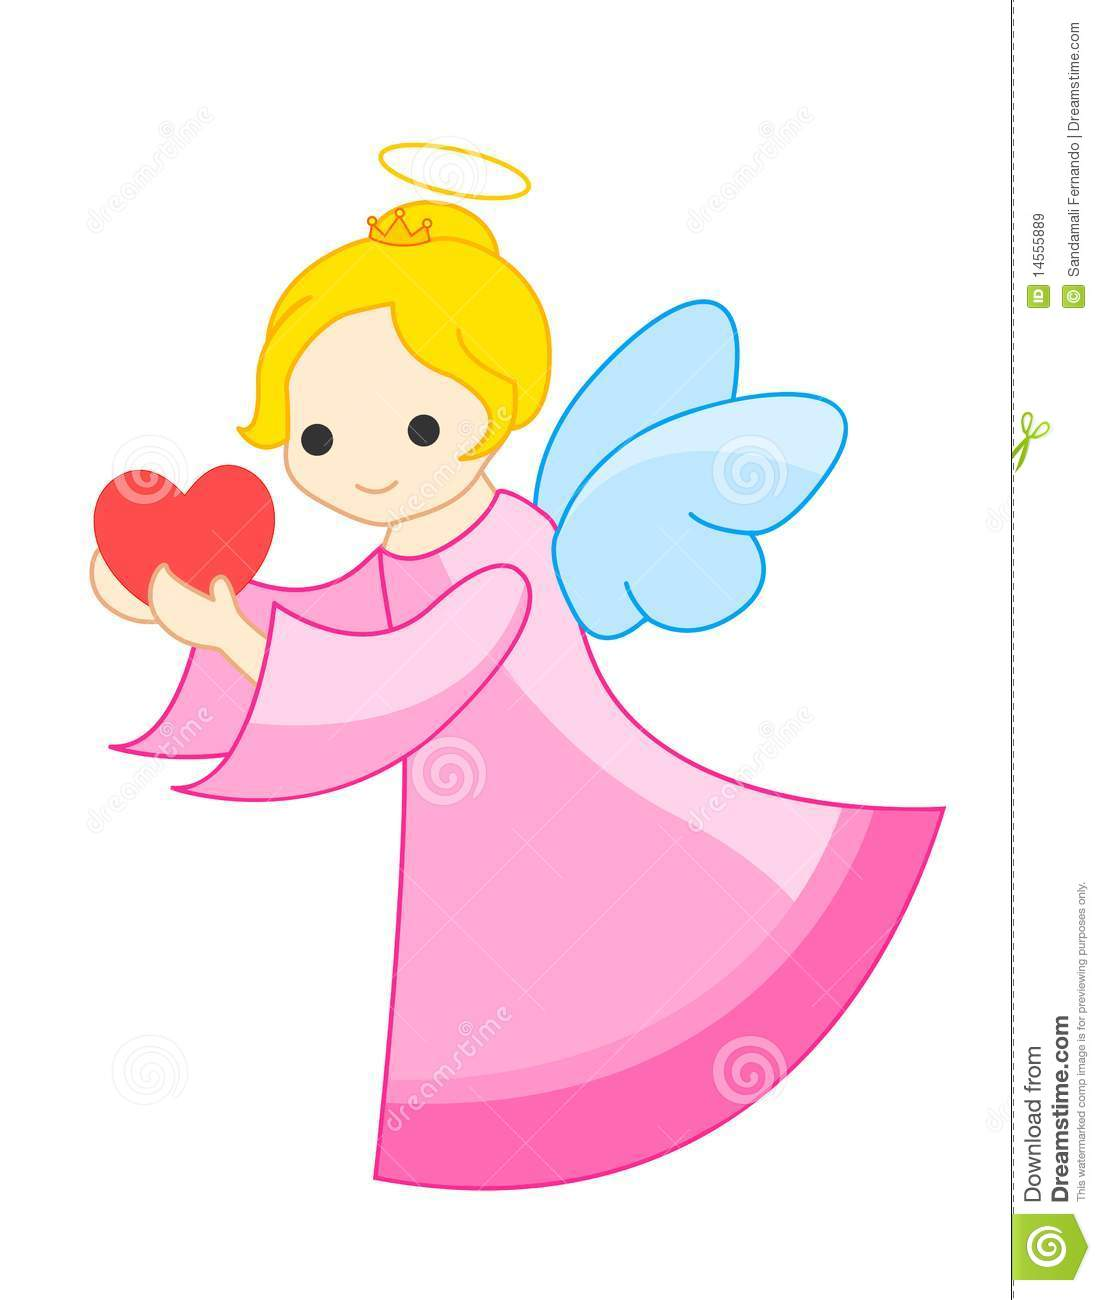 Cute angel clipart 1 » Clipart Station.